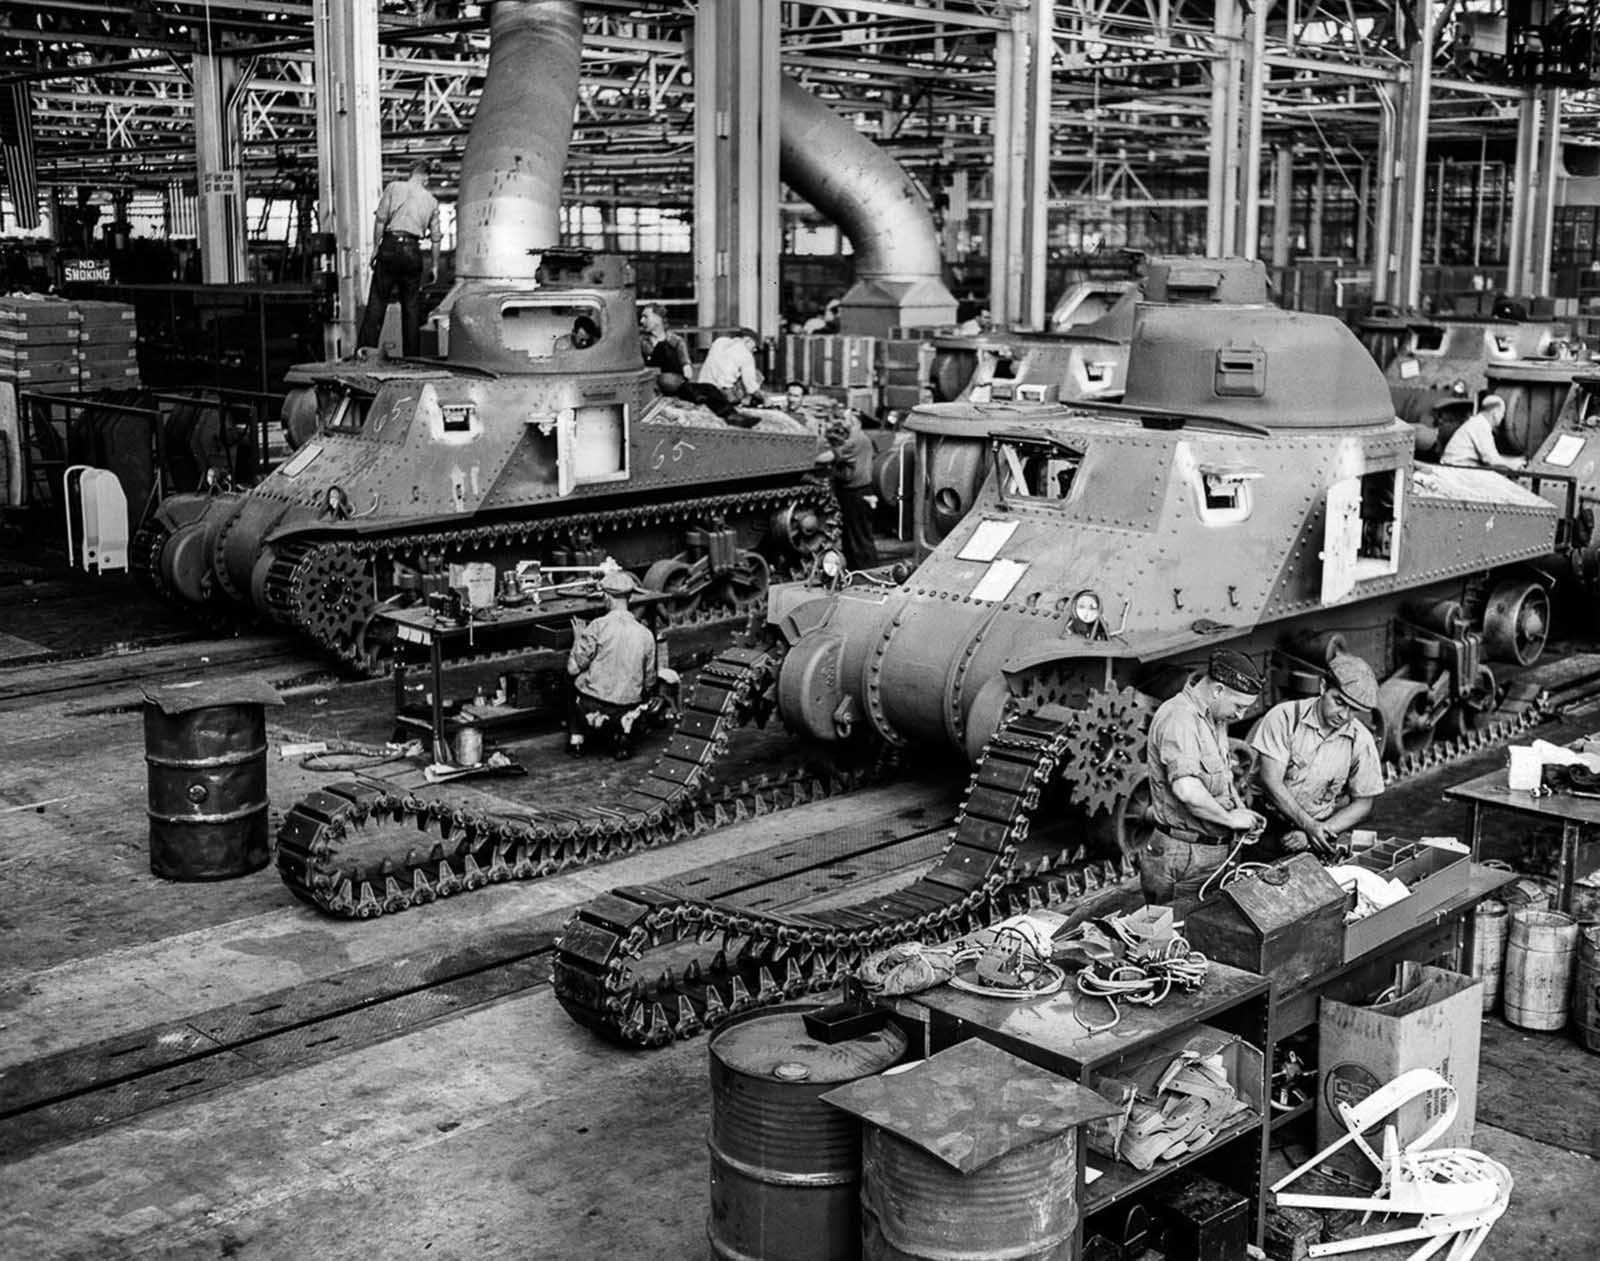 Workers assemble M-3 tanks in an American factory. 1942.